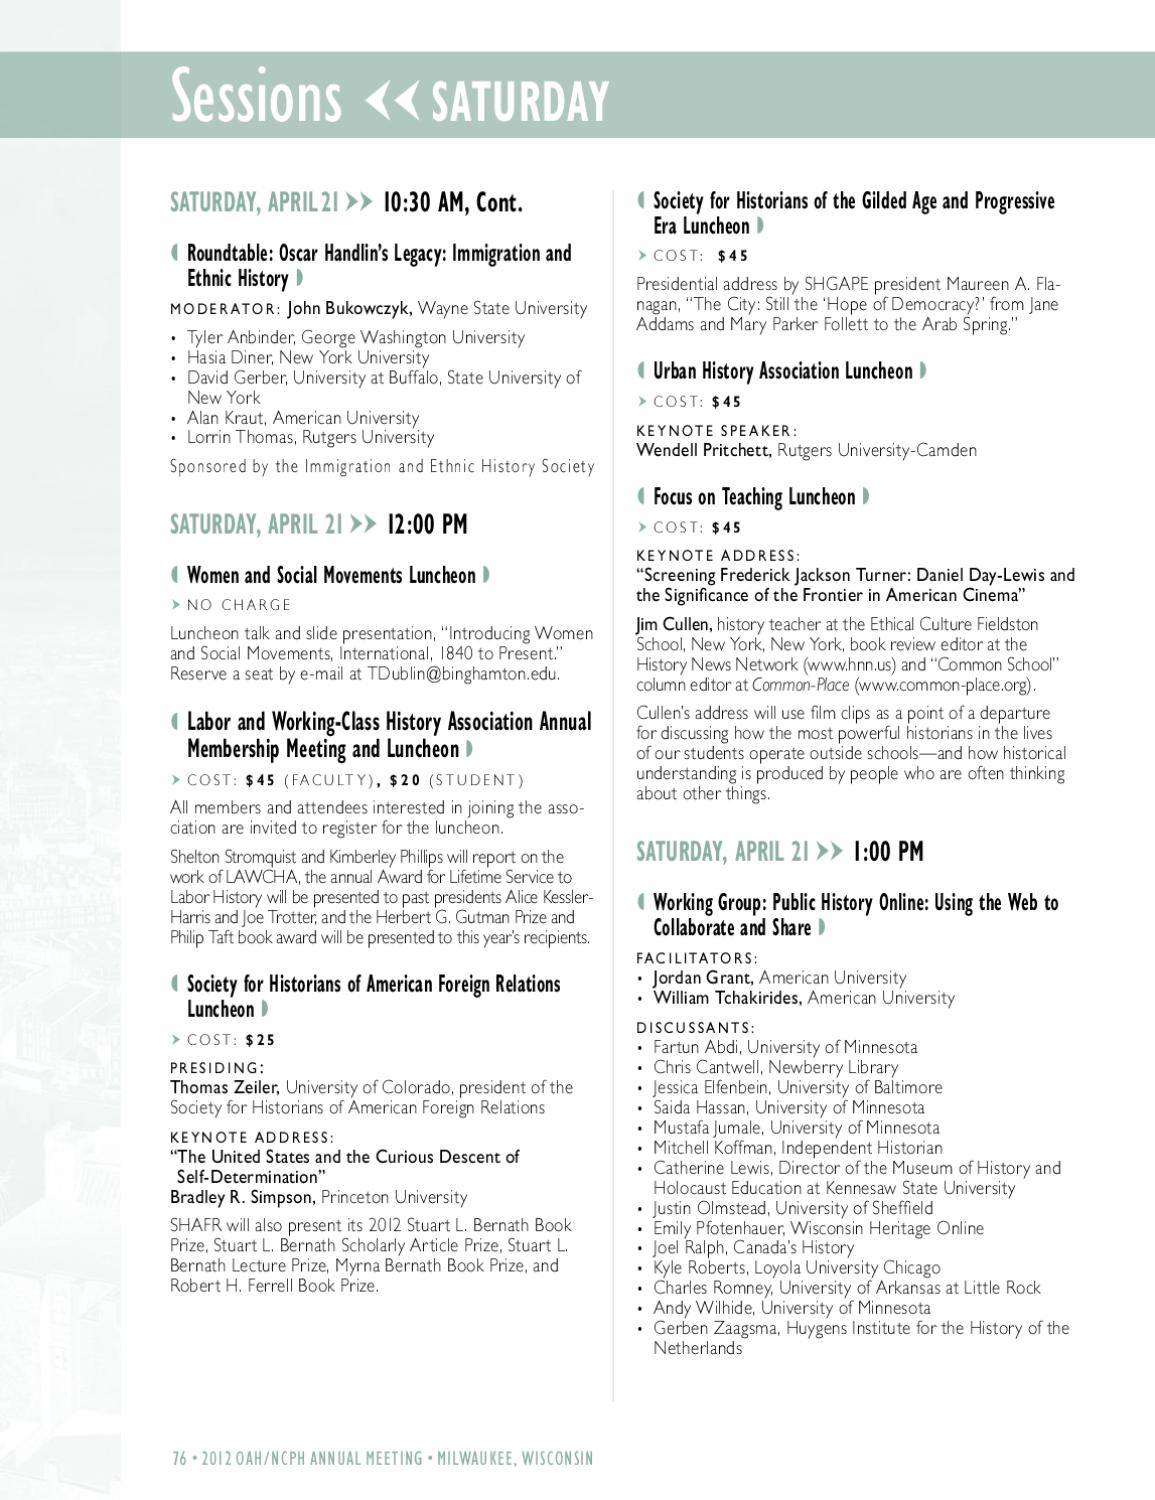 2012 OAH/NCPH Annual Meeting Program by Organization of